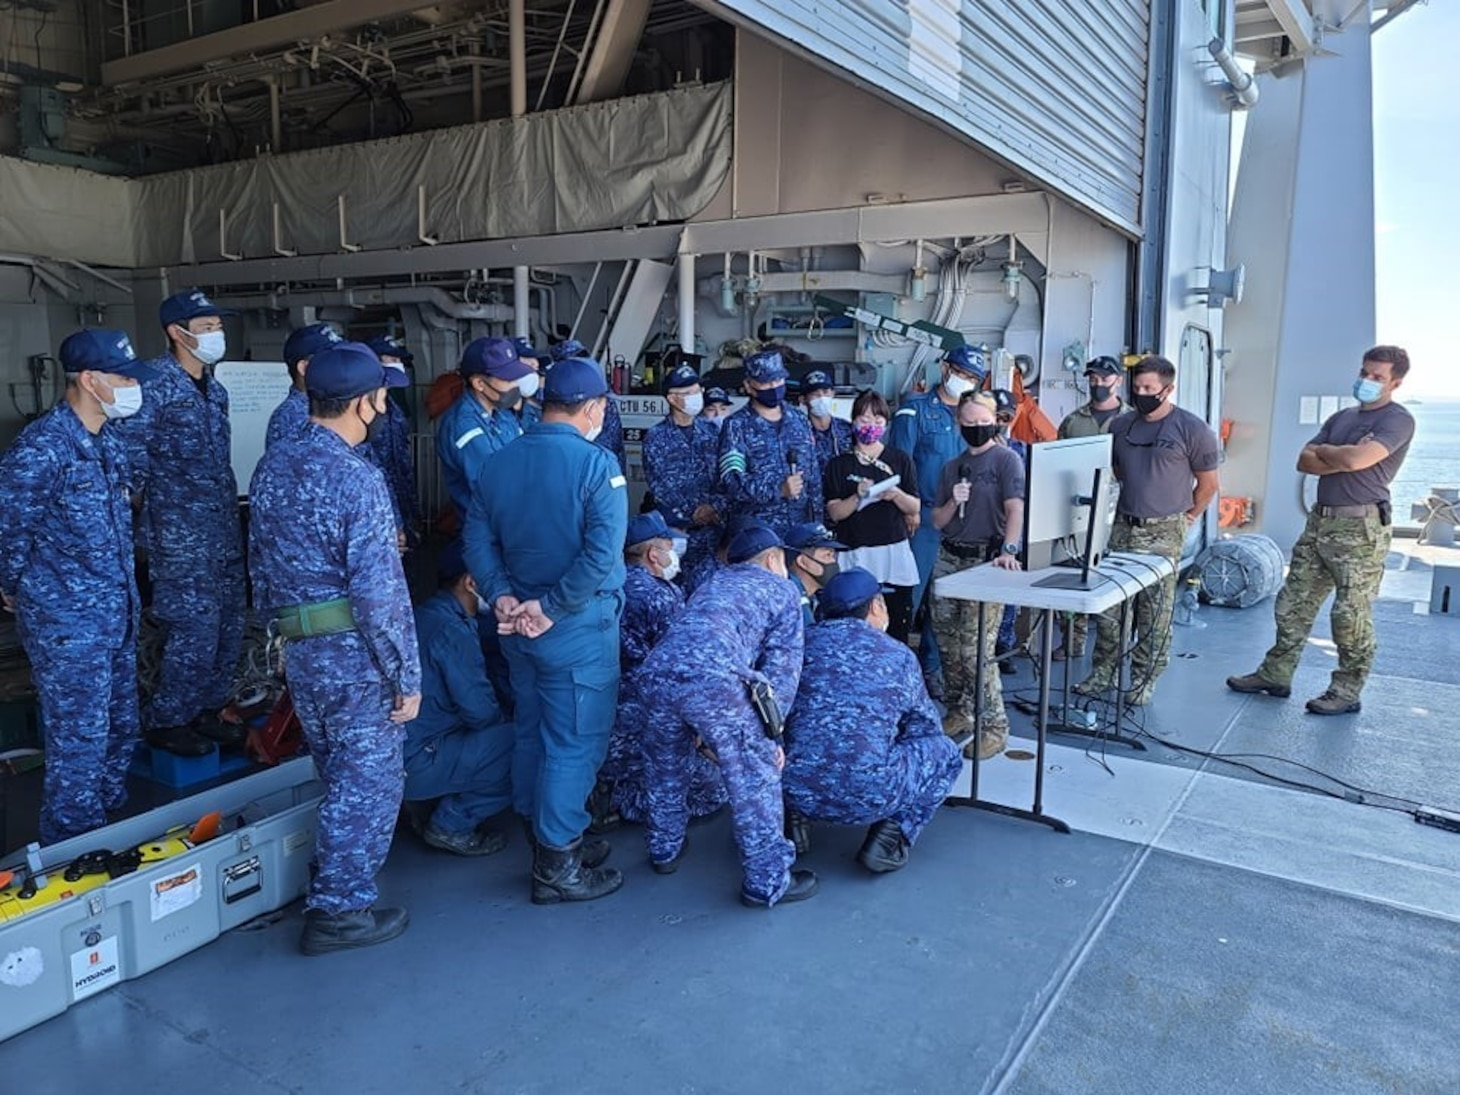 MUTSU BAY(July 19, 2021)- Members of the Japan Maritime Self-Defense Force (JMSDF) and the U.S. Navy participate in improvised explosive device training  during 2JA Mine Warfare Exercise (MIWEX) in Japan's Mutsu Bay. 2JA MIWEX is an annual bilateral exercise between the U.S. Navy and Japan Maritime Self-Defense Force to strengthen interoperability and increase proficiency in mine countermeasure operations